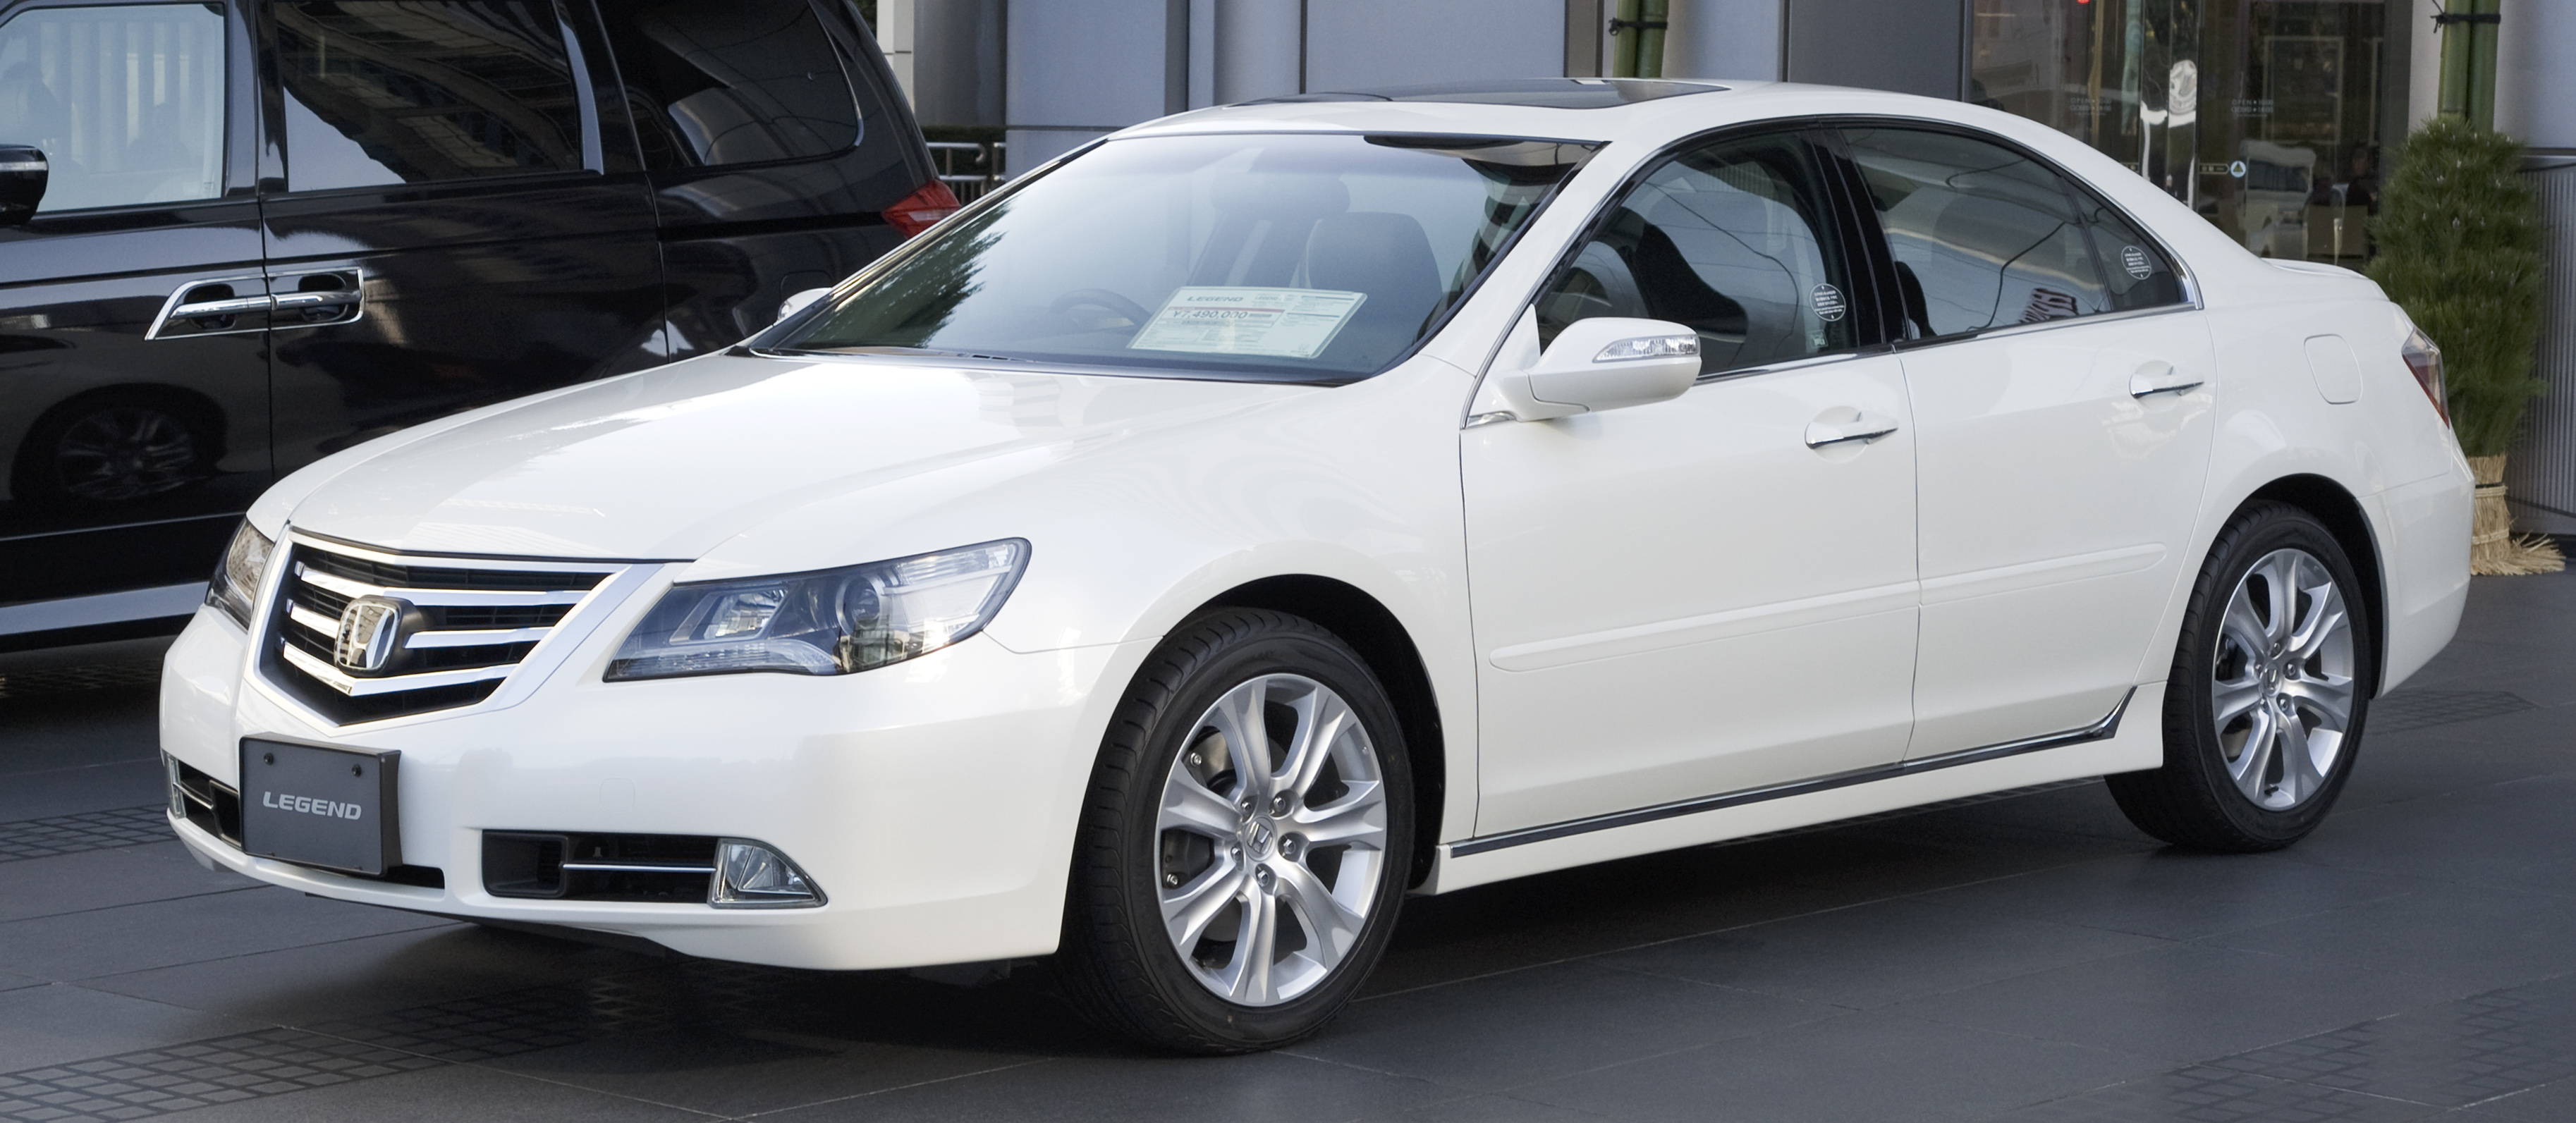 honda legend iv (kb1) 2010 models #1